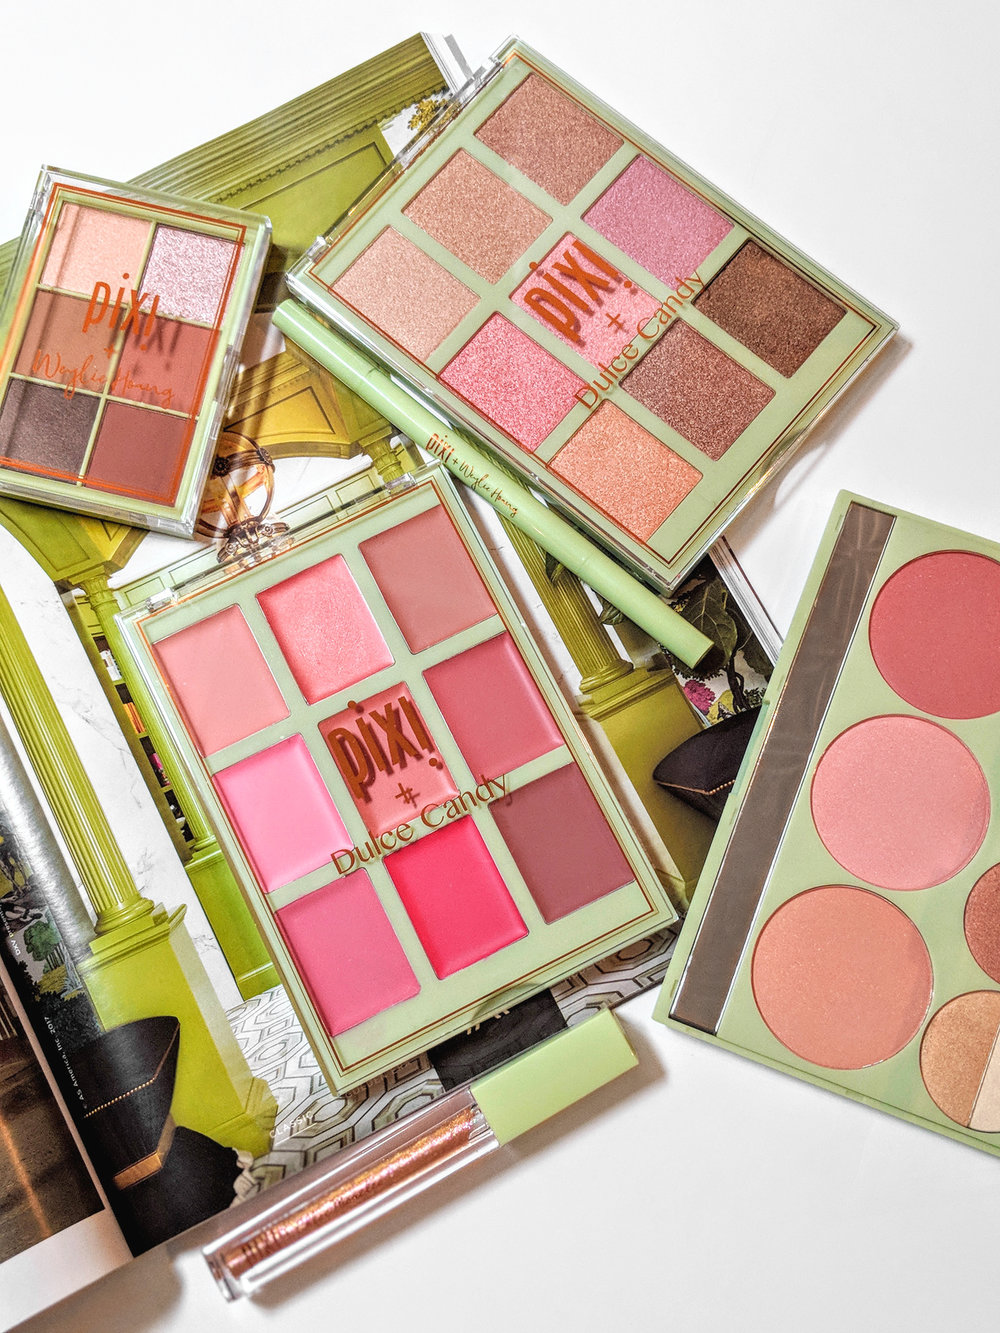 Pixi Beauty makeup